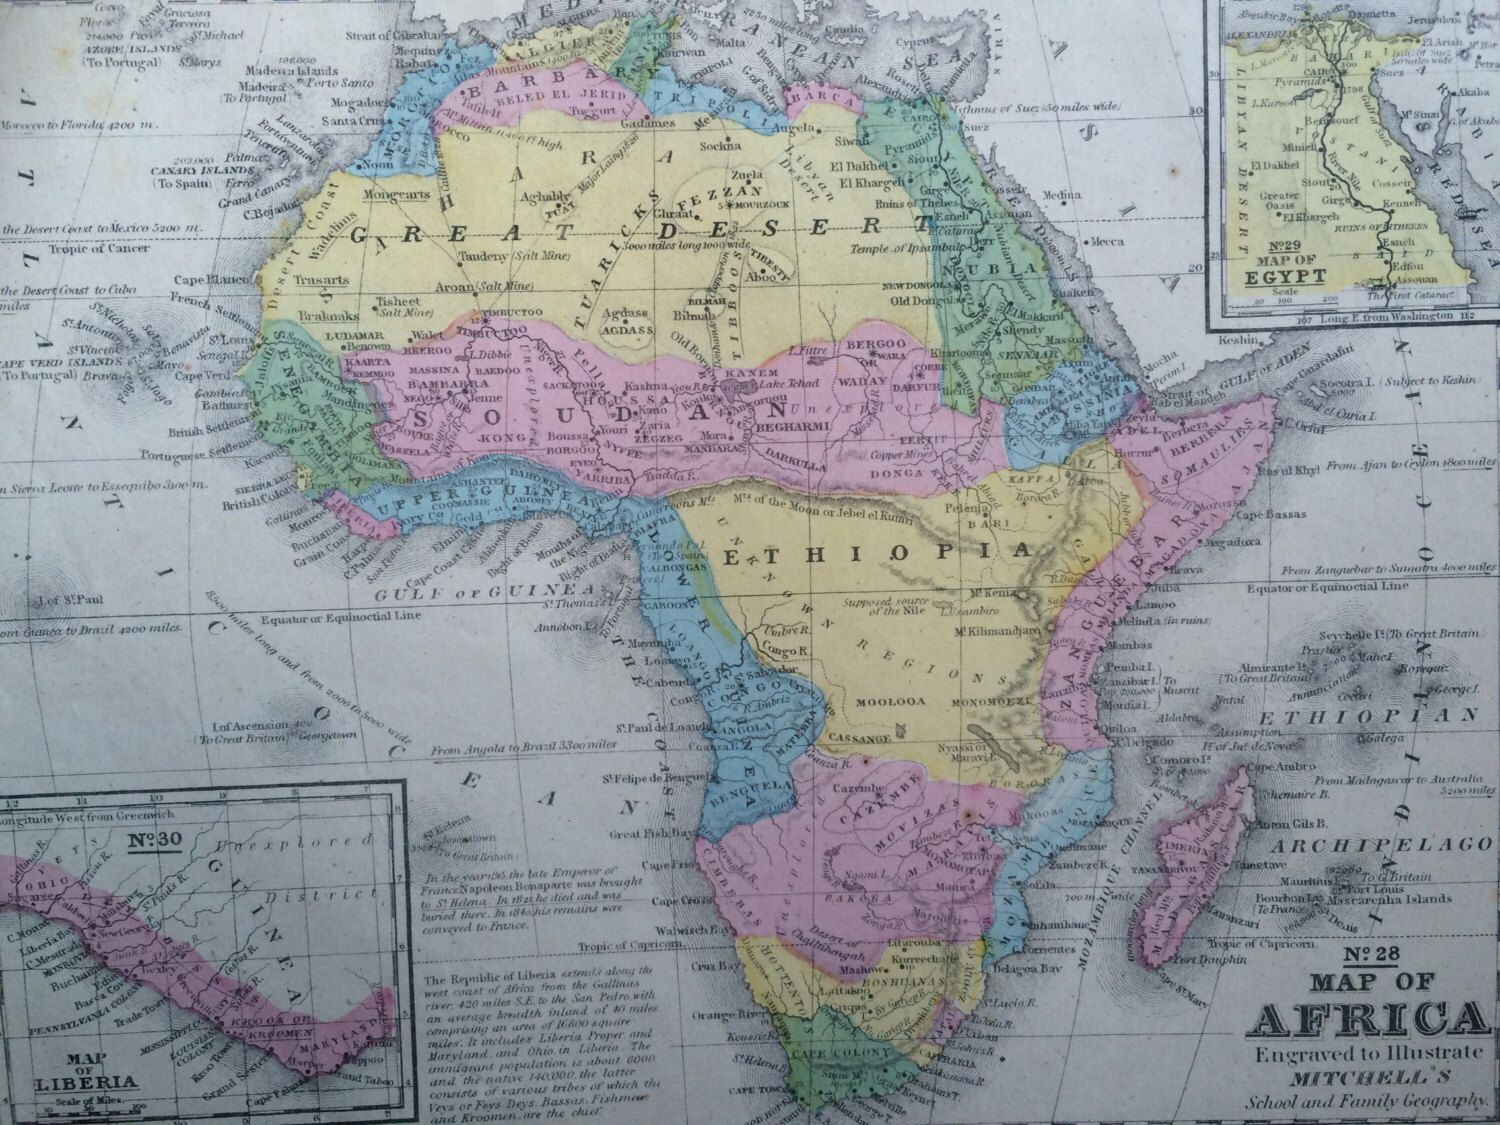 AFRICA Original Antique Hand Coloured Map With Inset Maps Of - Map of egypt and uk